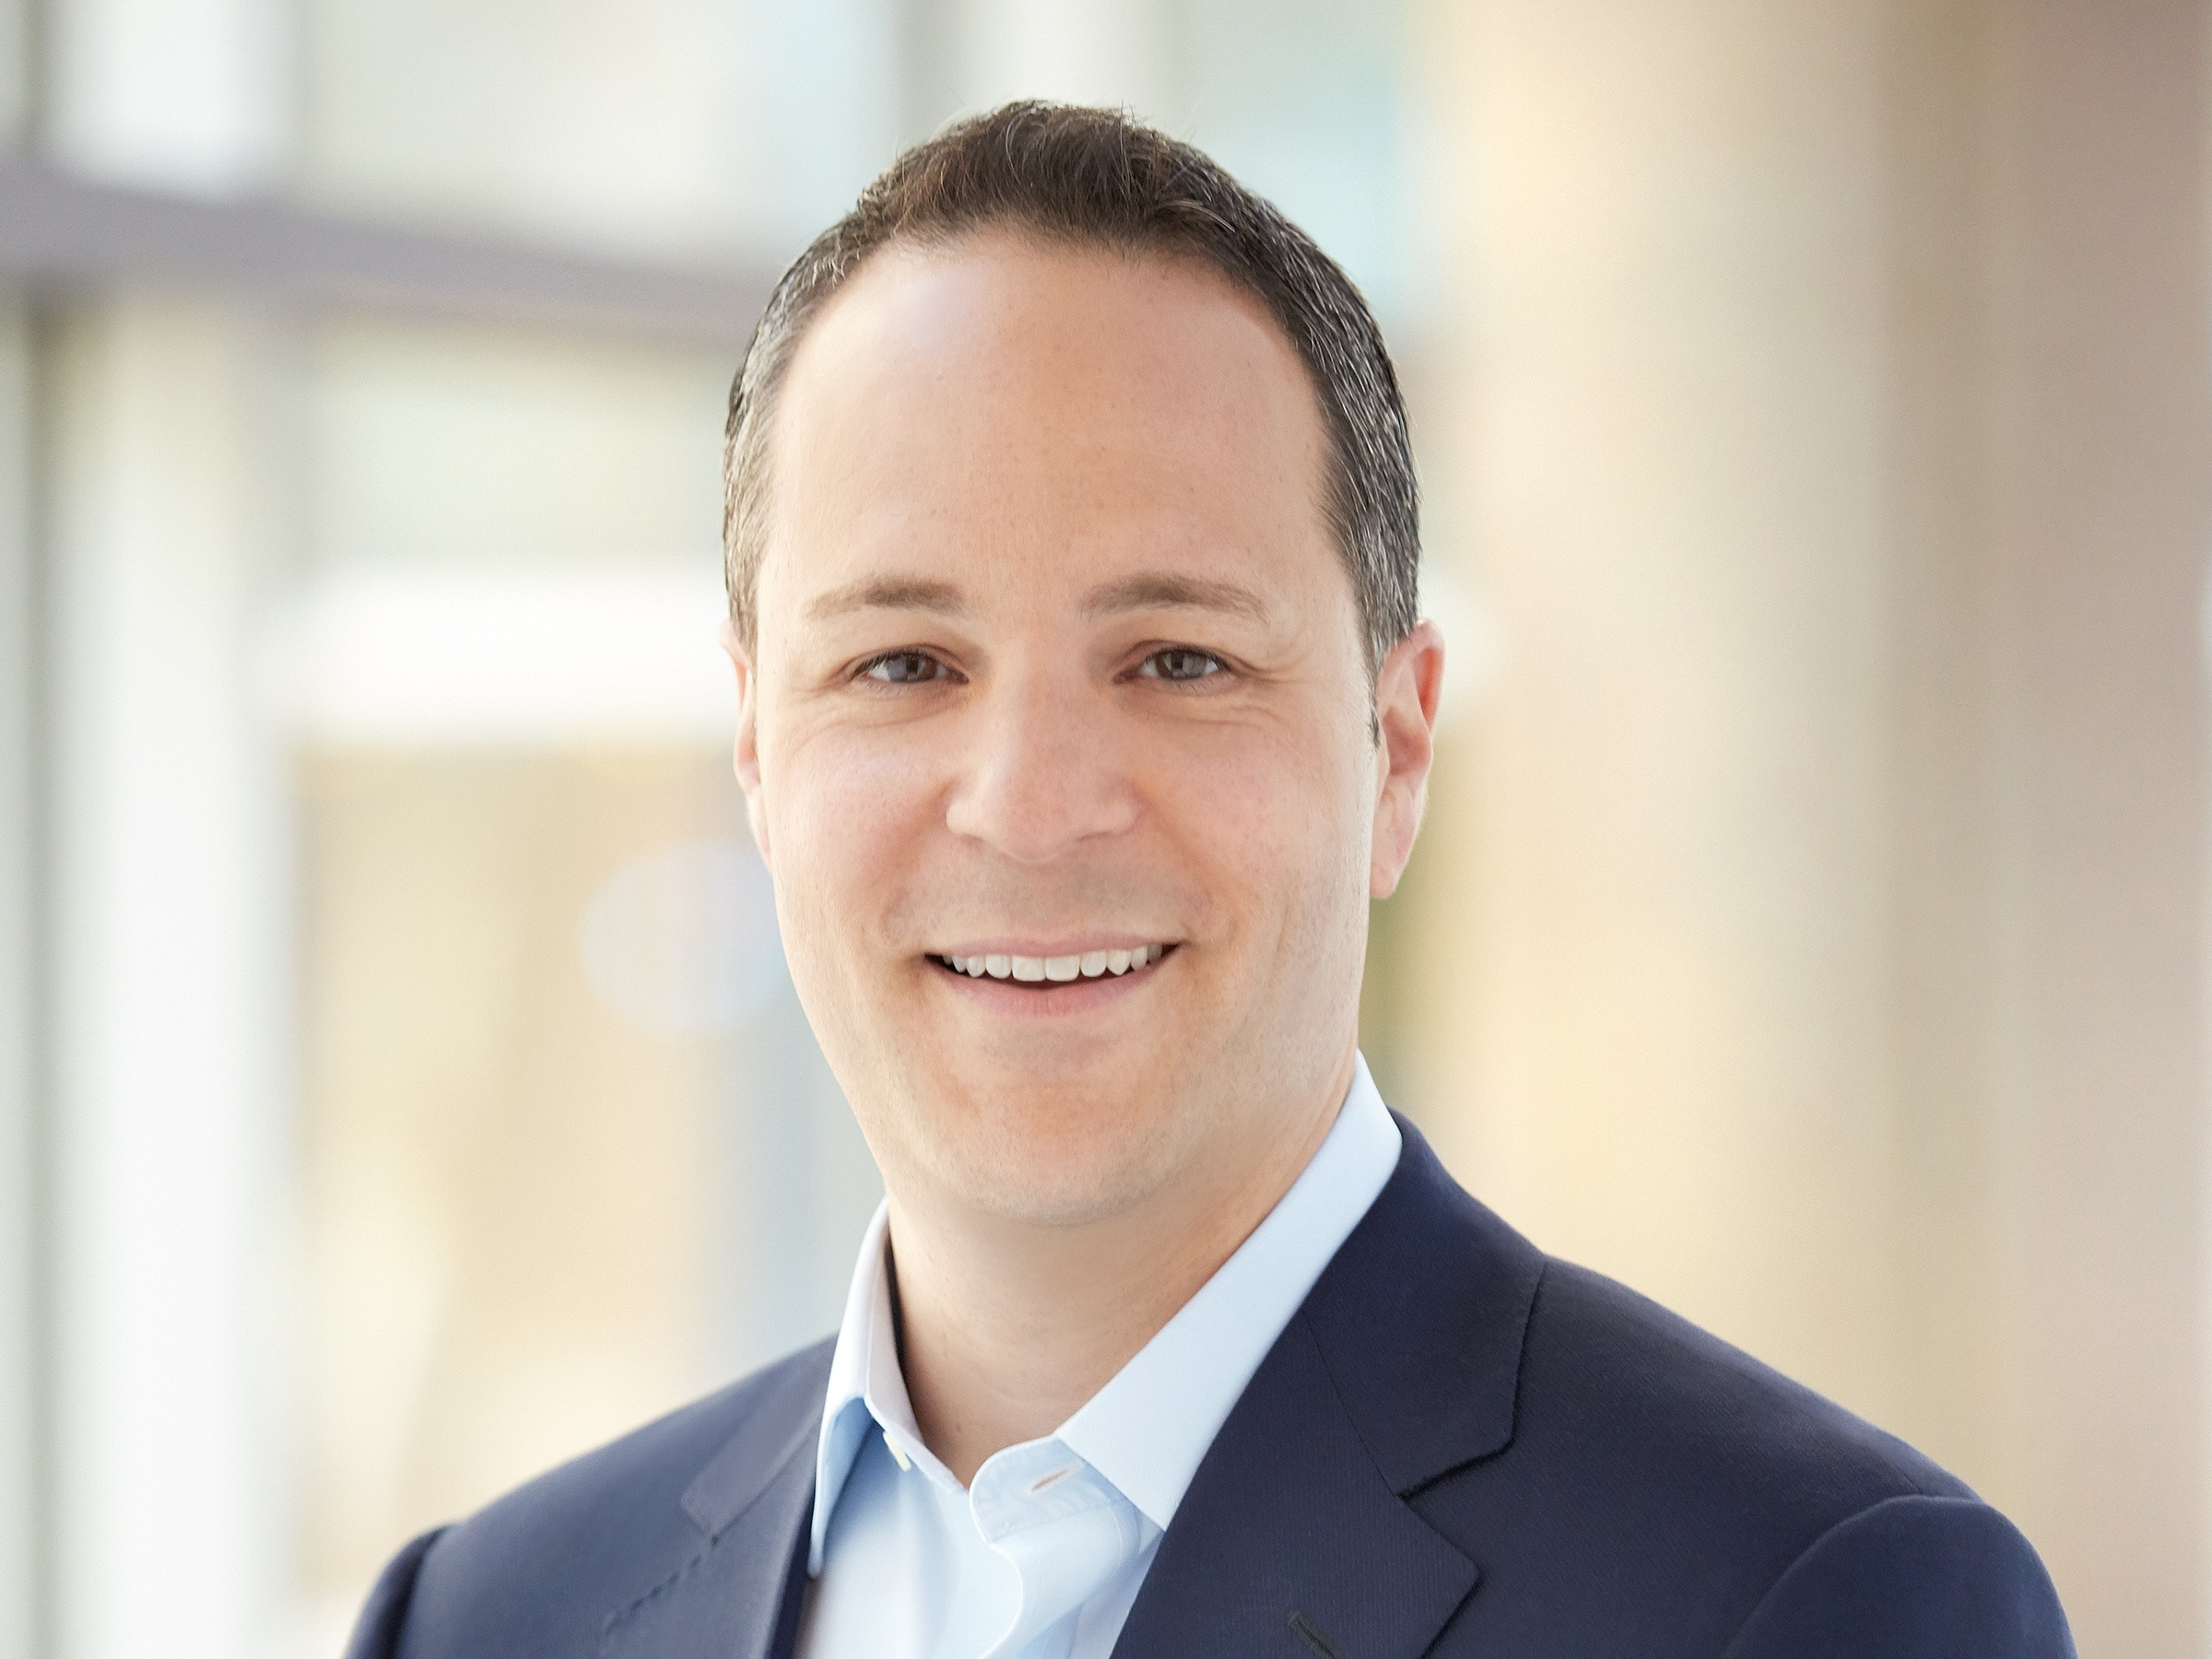 Best Buy CCO Matt Furman On Storytelling Over Data & Championing Truth In The DEI Discussion